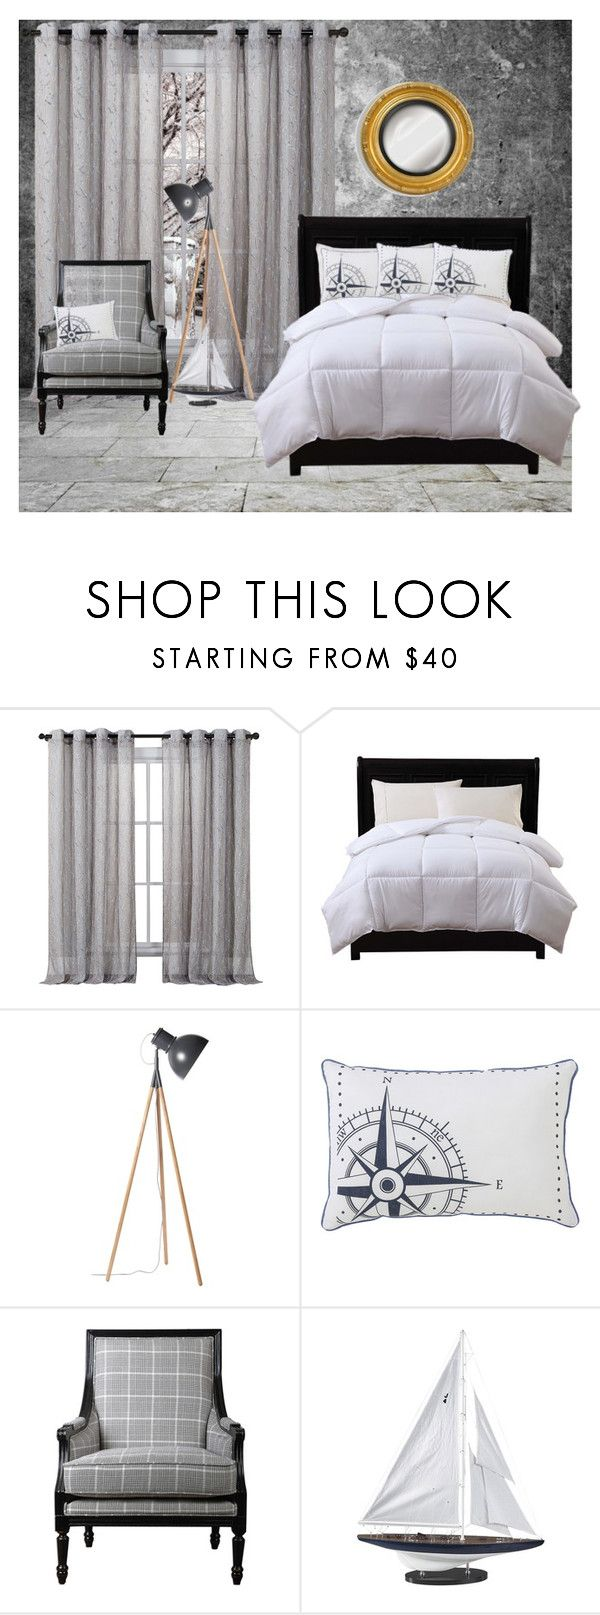 """Samantha_1141"" by samanthaos ❤ liked on Polyvore featuring interior, interiors, interior design, home, home decor, interior decorating, Shibuya, VCNY, Caribbean Joe and Authentic Models"